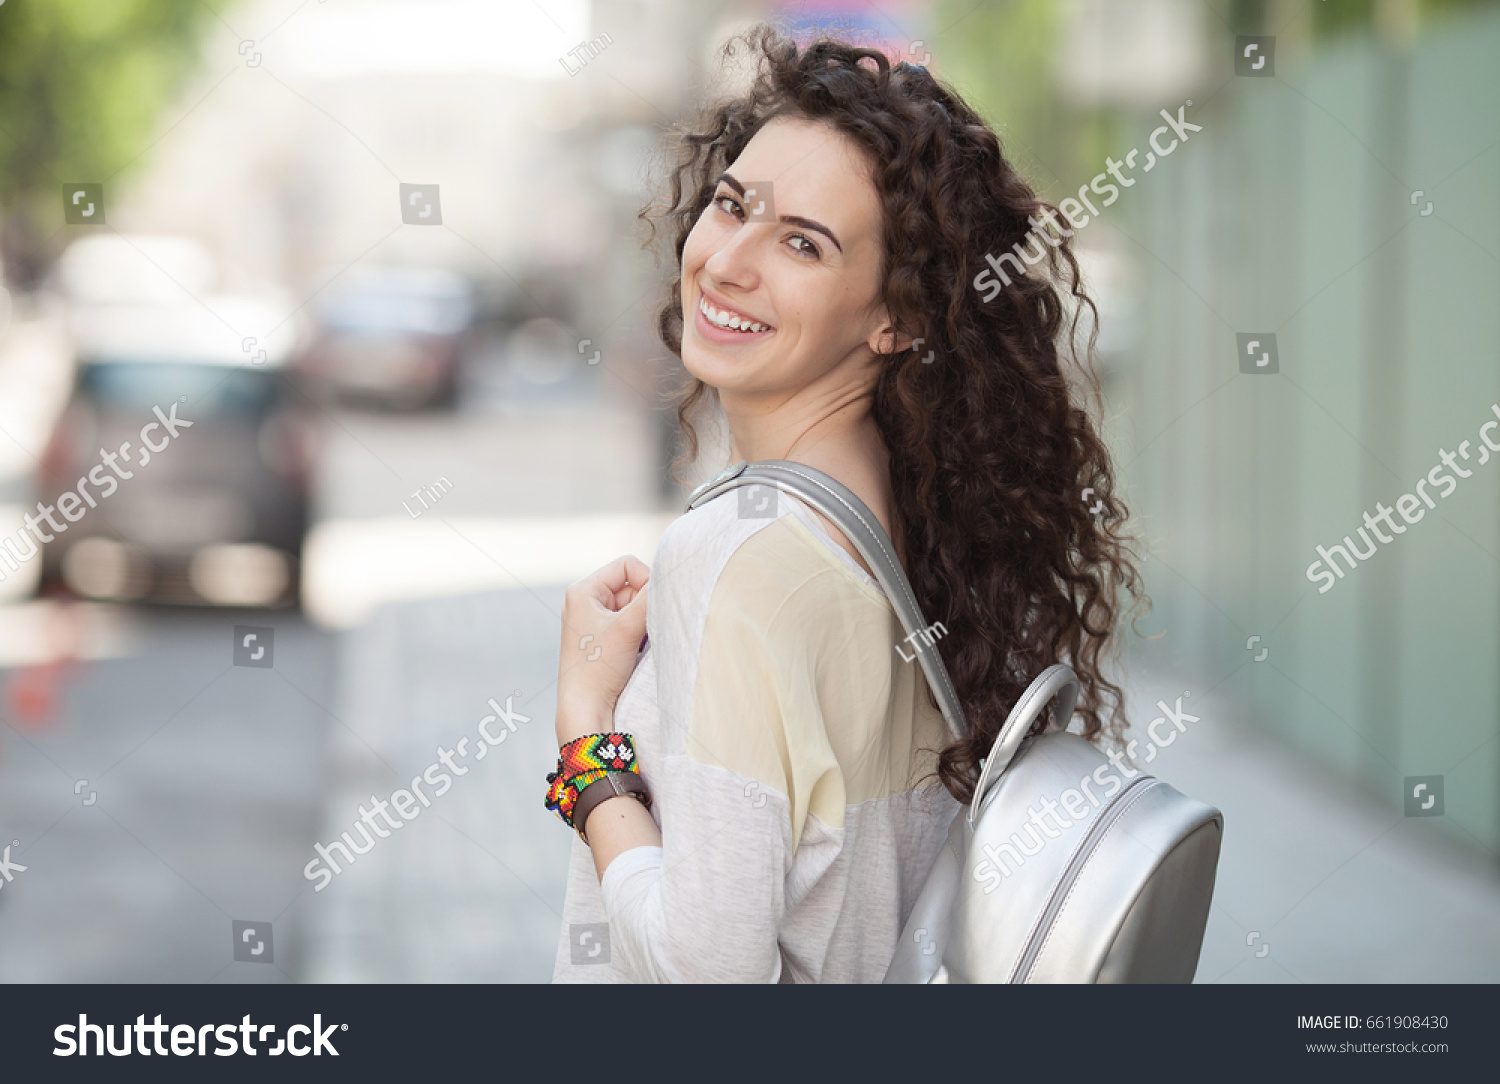 3458abcec5 Beautiful Sunny Portrait Curly Hair Girl Stock Photo (Edit Now ...